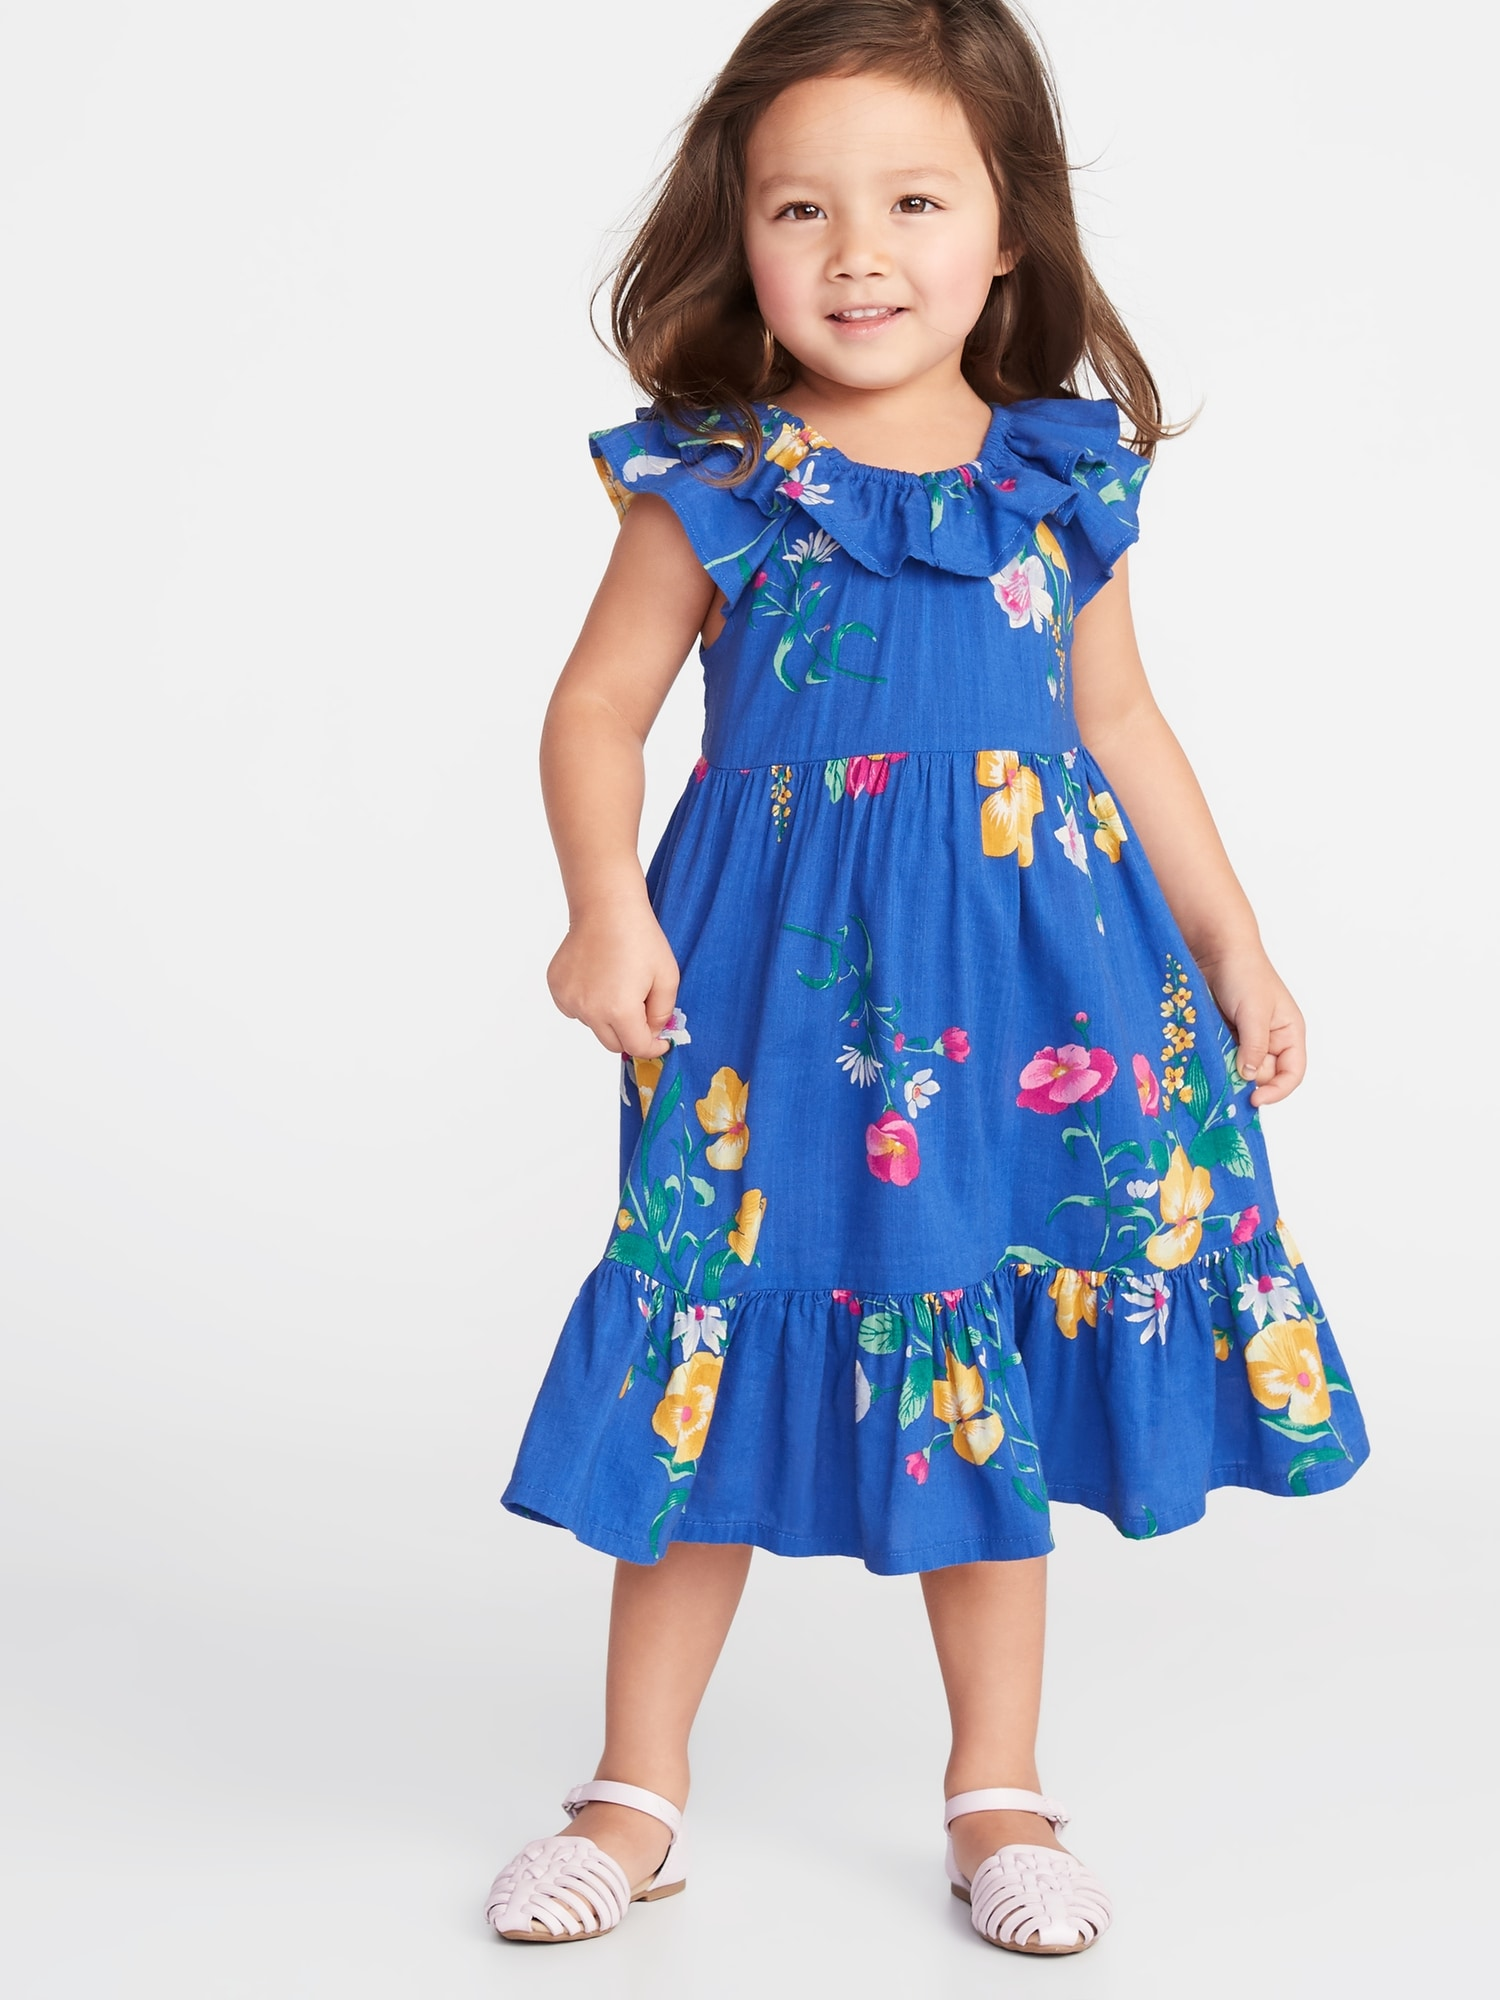 92ab7c7048 Floral Tiered Swing Dress for Toddler Girls